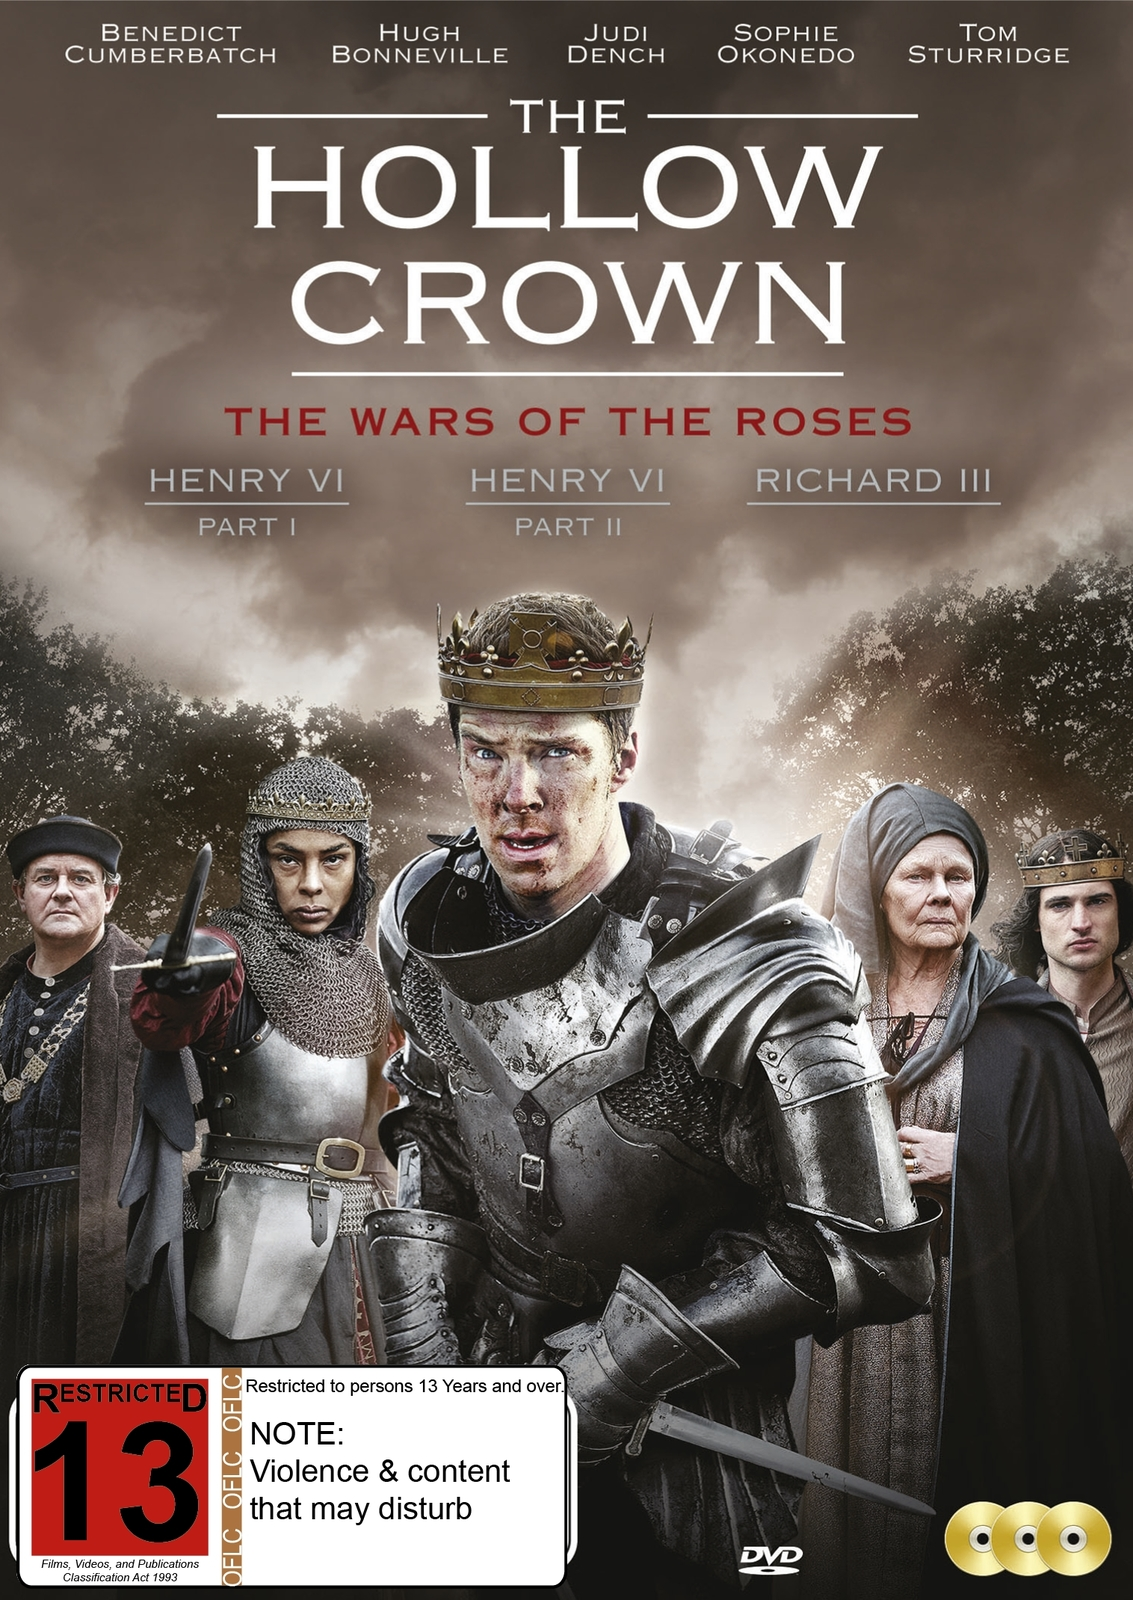 The Hollow Crown - The War Of The Roses on DVD image